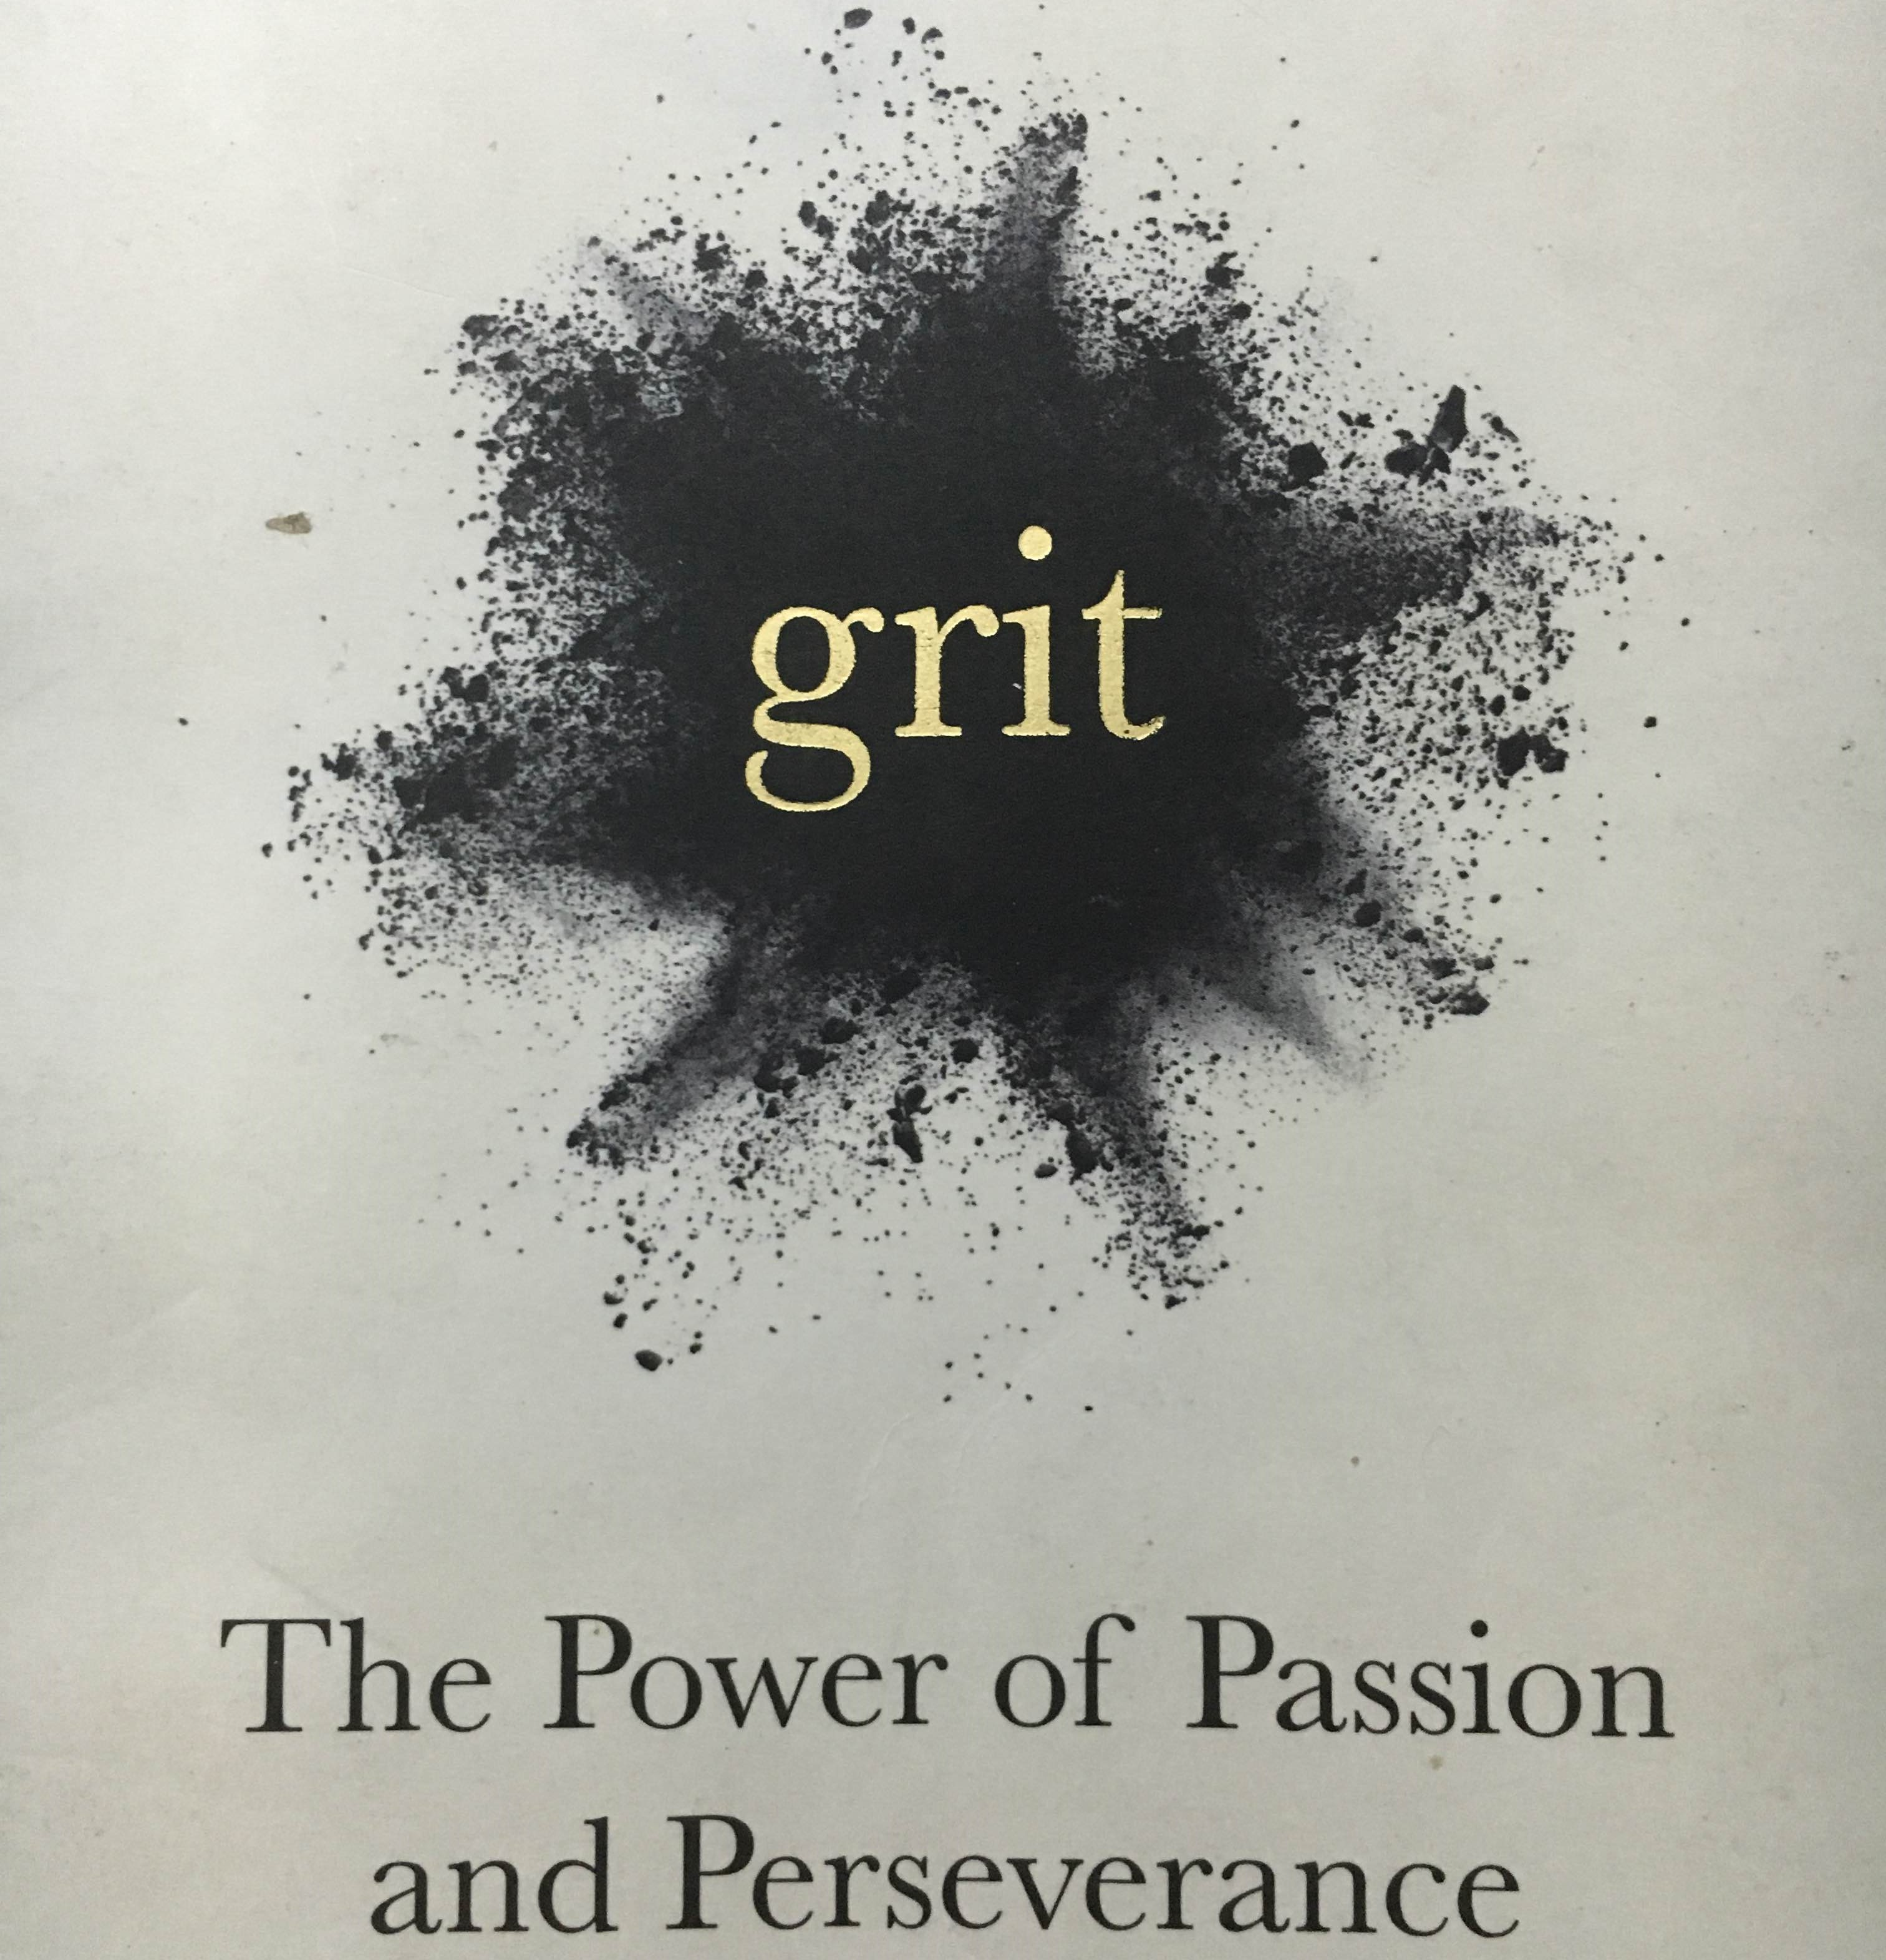 'Grit' by Angela Duckworth - Book Summary Part III